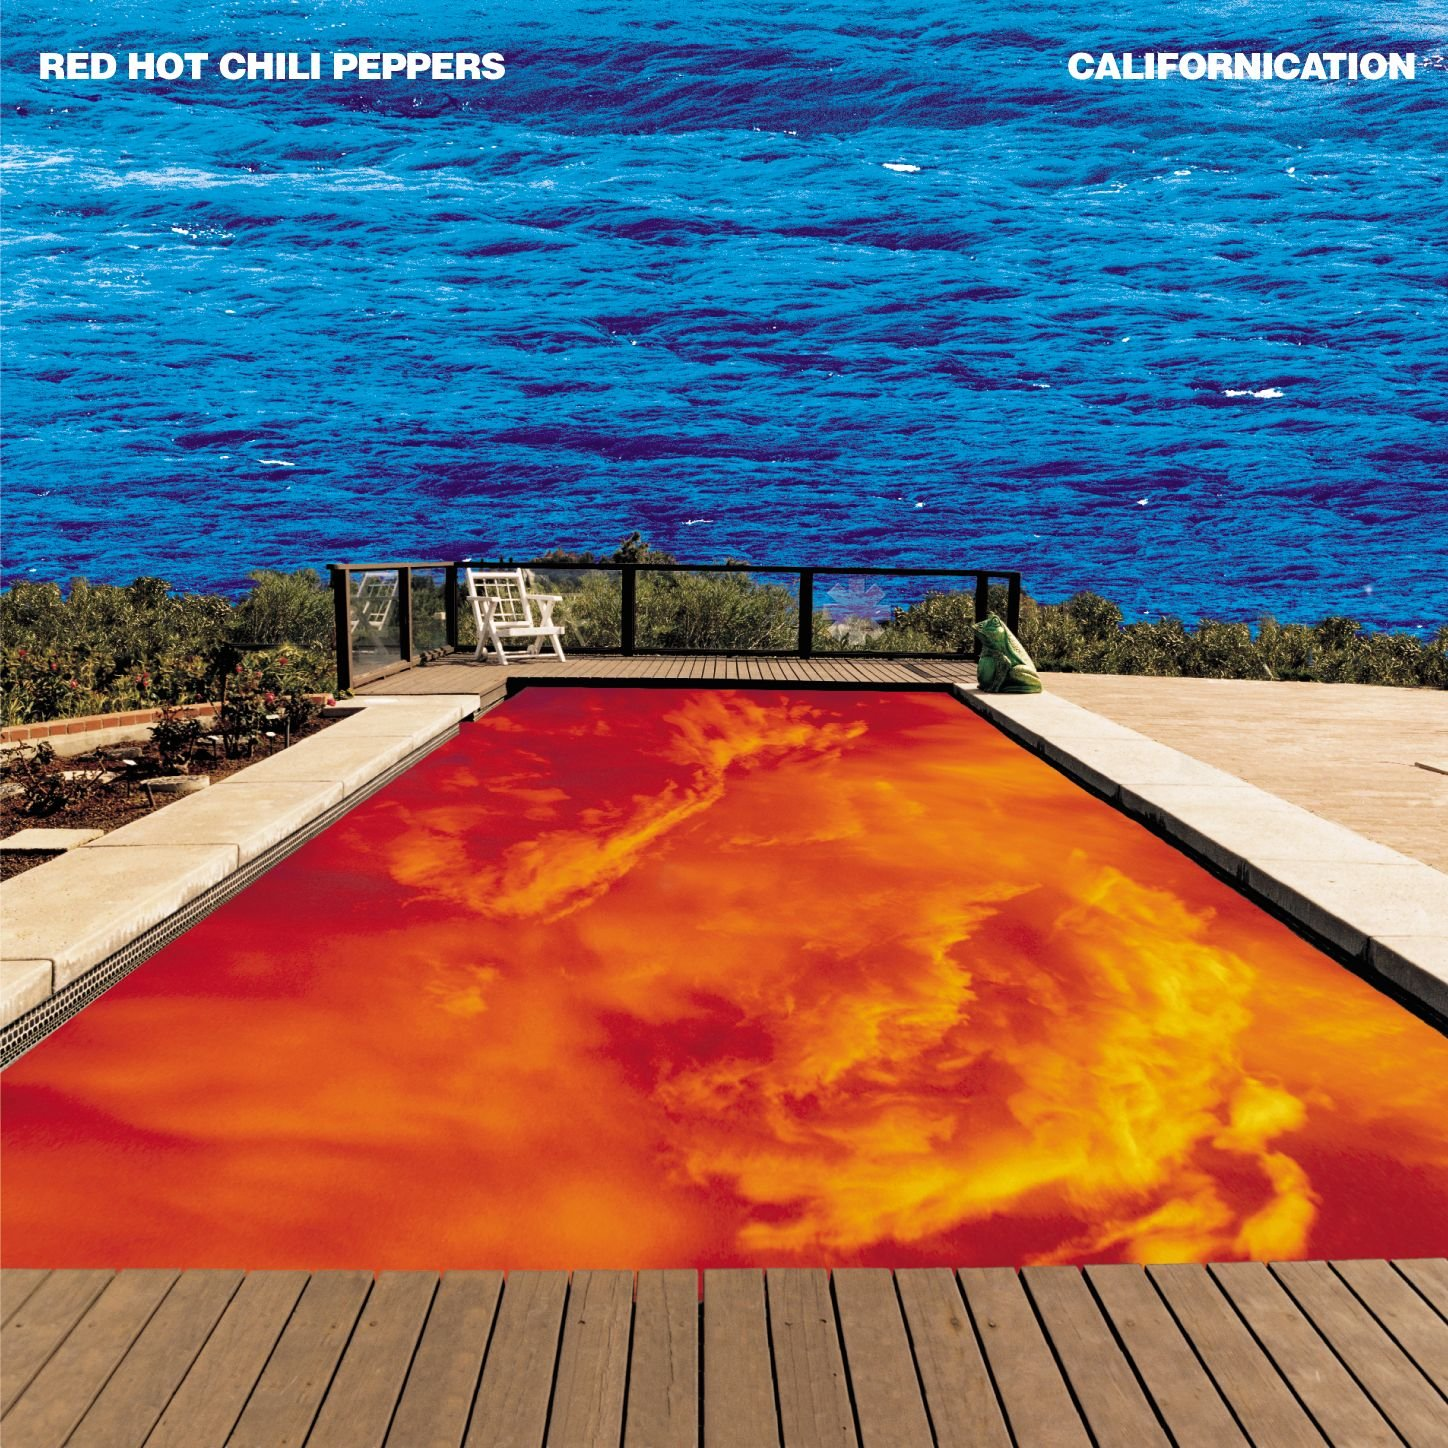 Risultato immagini per red hot chili peppers californication